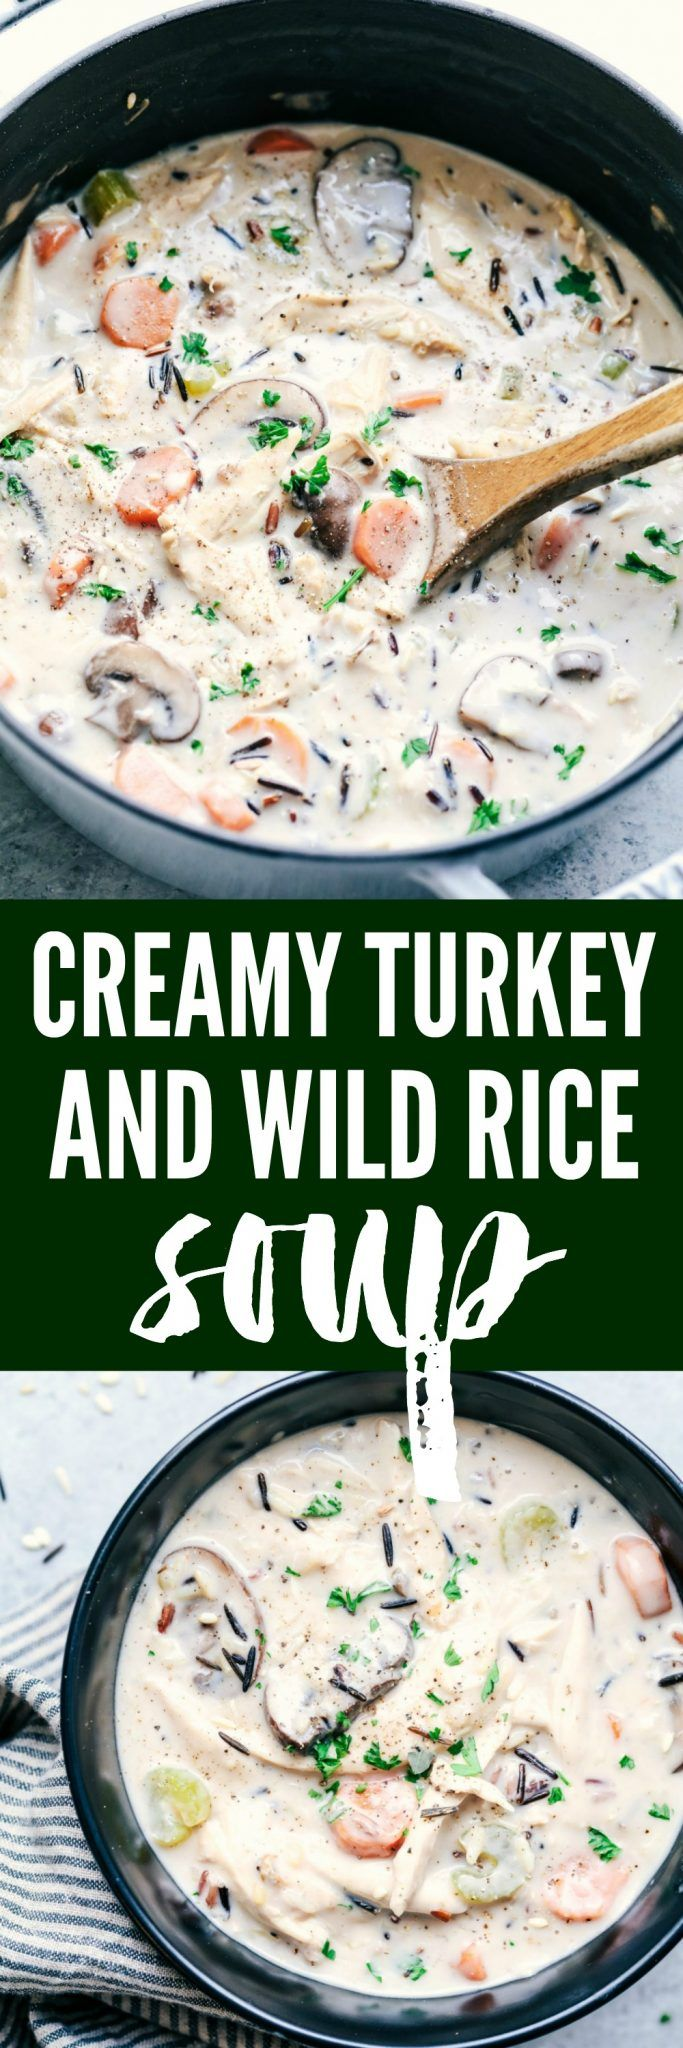 Creamy Turkey Wild Rice Soup is a creamy and delicious hearty soup filled with wild rice, veggies, and perfect for using up leftover turkey!